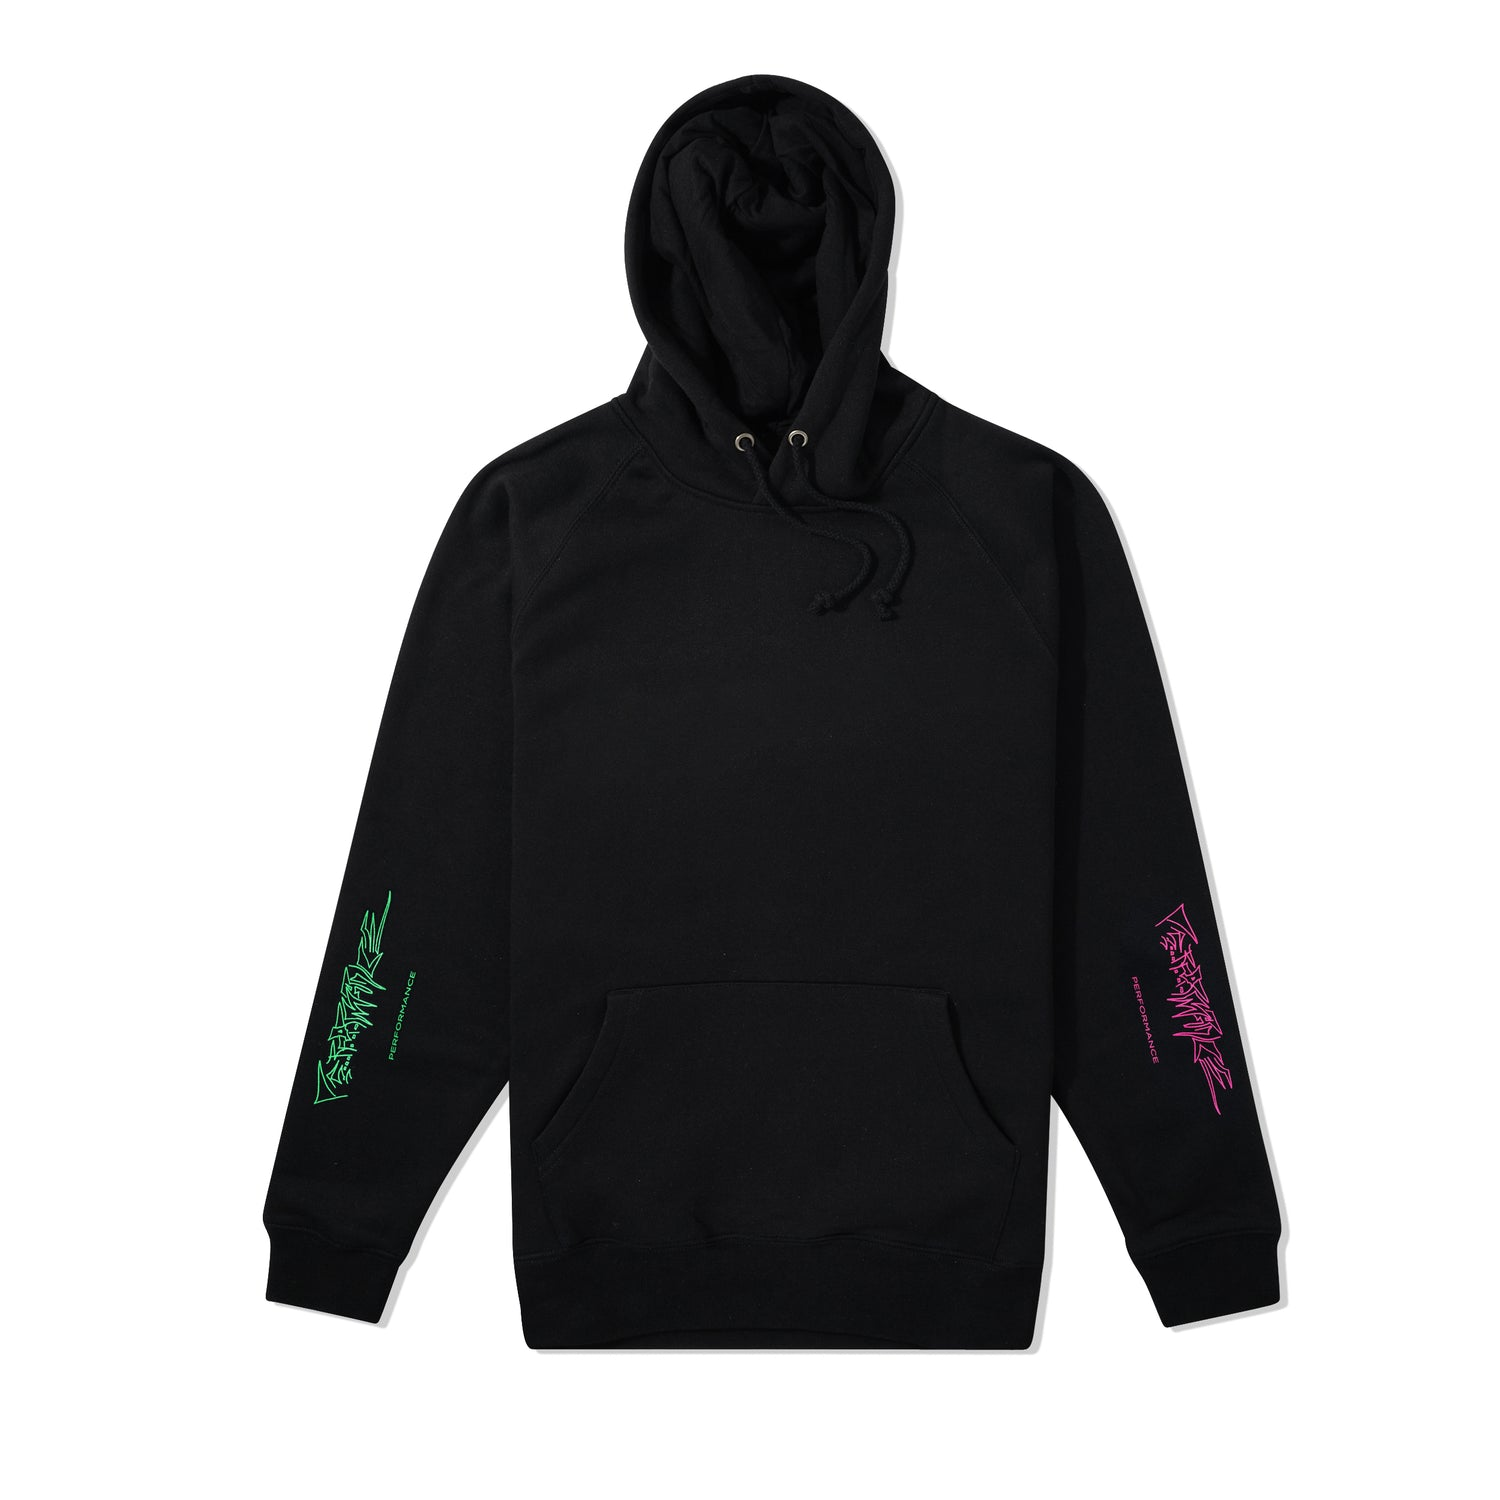 Double Sleeve Pullover, Black